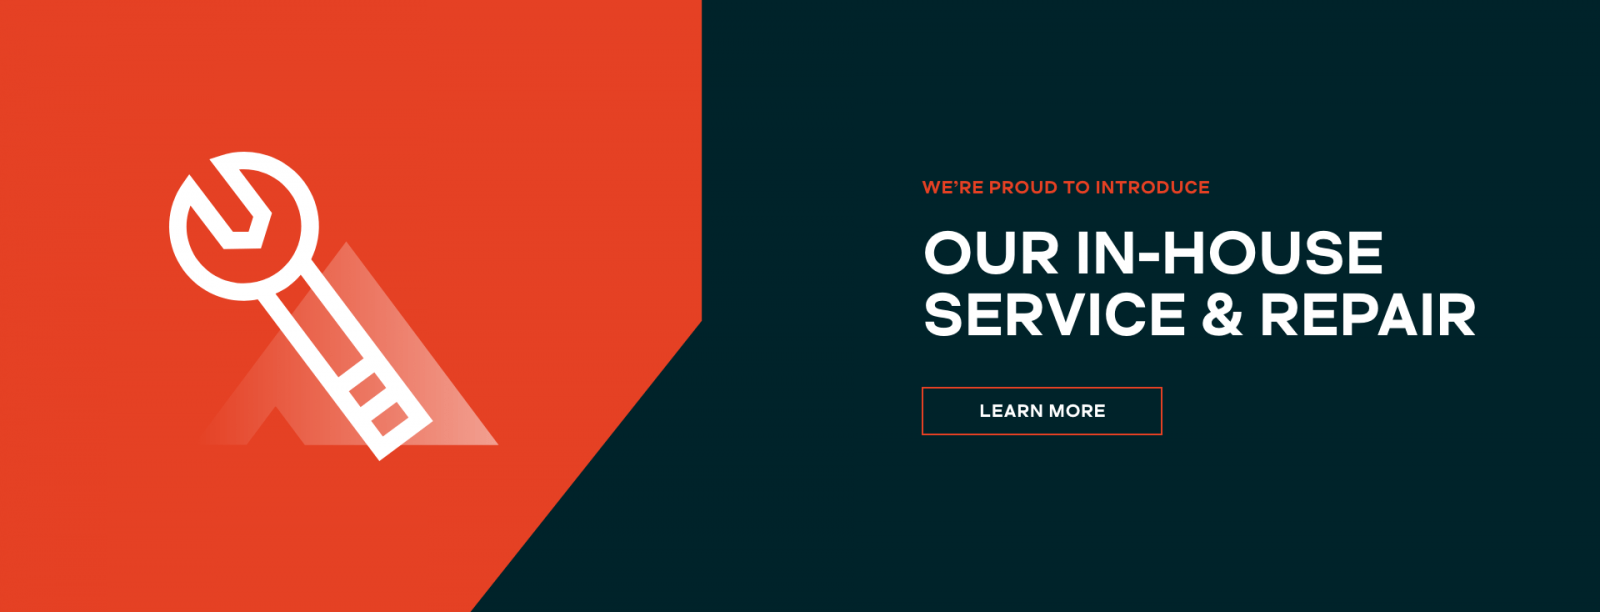 we're proud to introduce our in-house service & repair